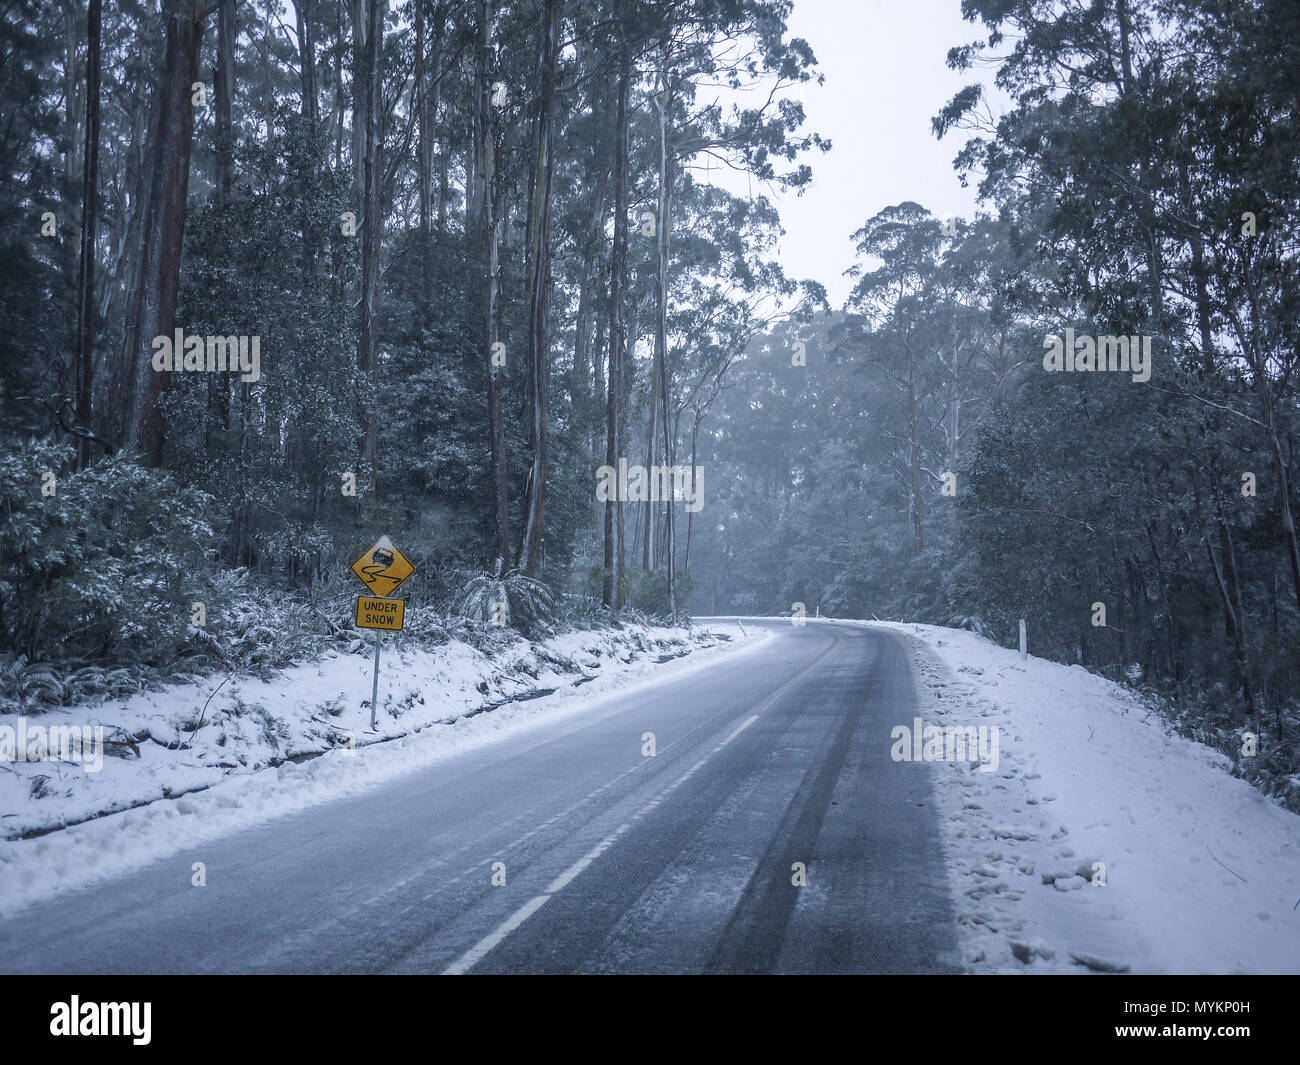 Slippery road warning sign for car drivers on side of a snow covered road. Icy scenic mountain route in winter forest. Mt Donna Buang, VIC Australia - Stock Image